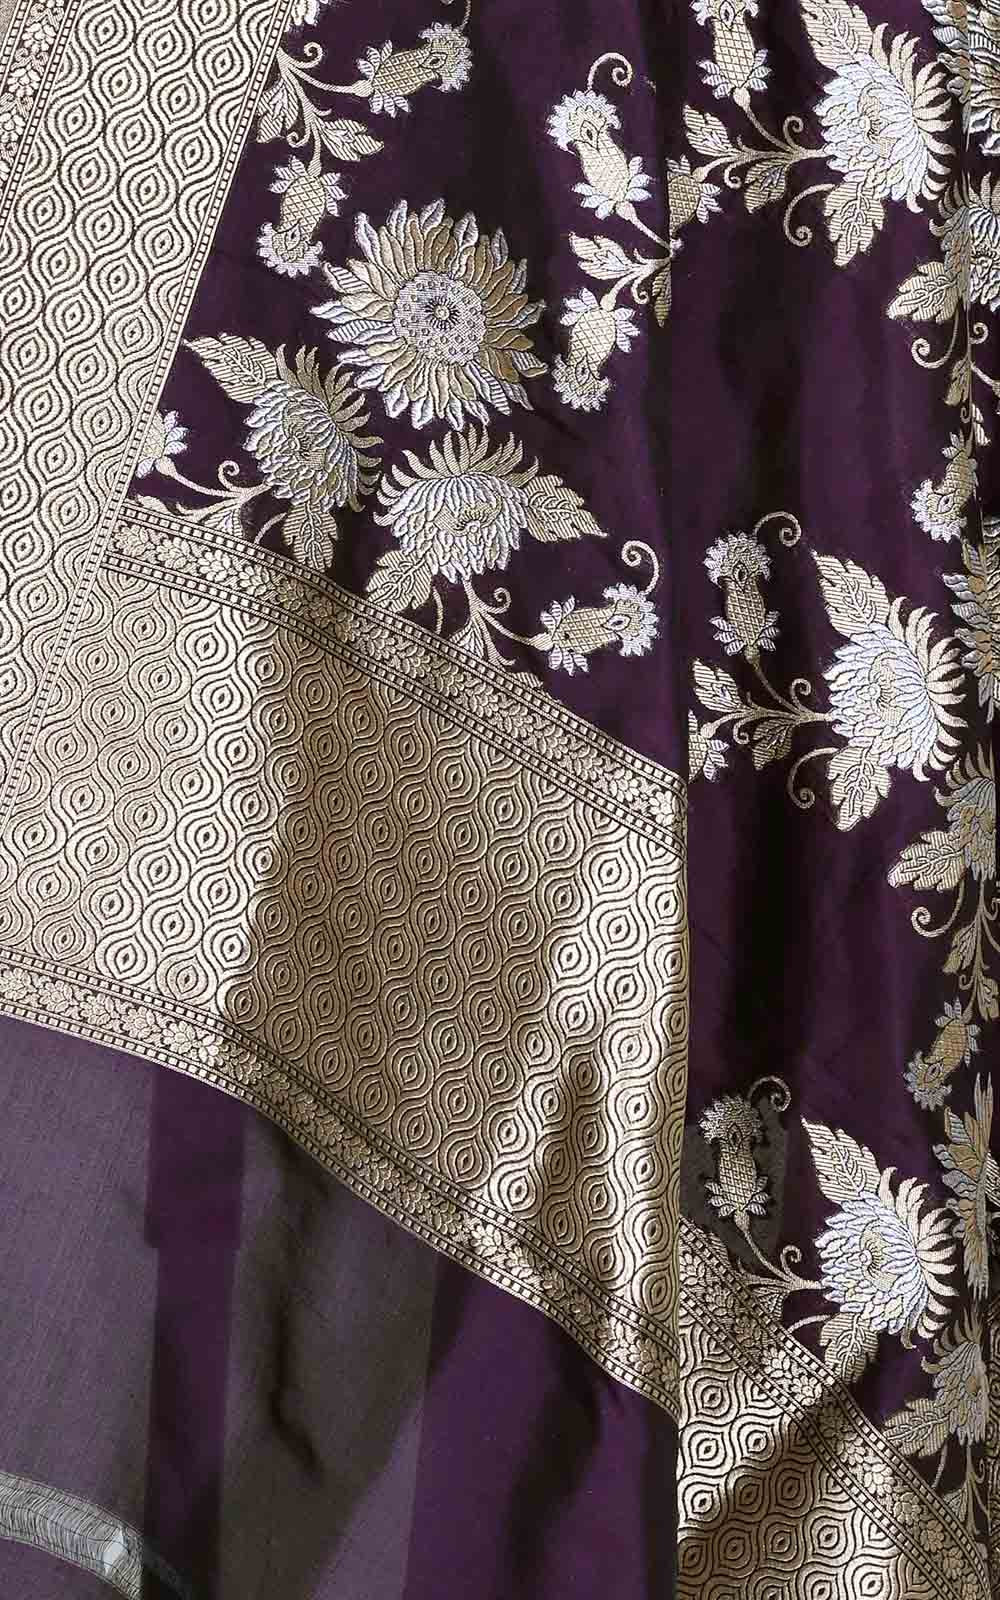 Deep Purple katan silk Banarasi dupatta with sona rupa floral boota (2) Close up